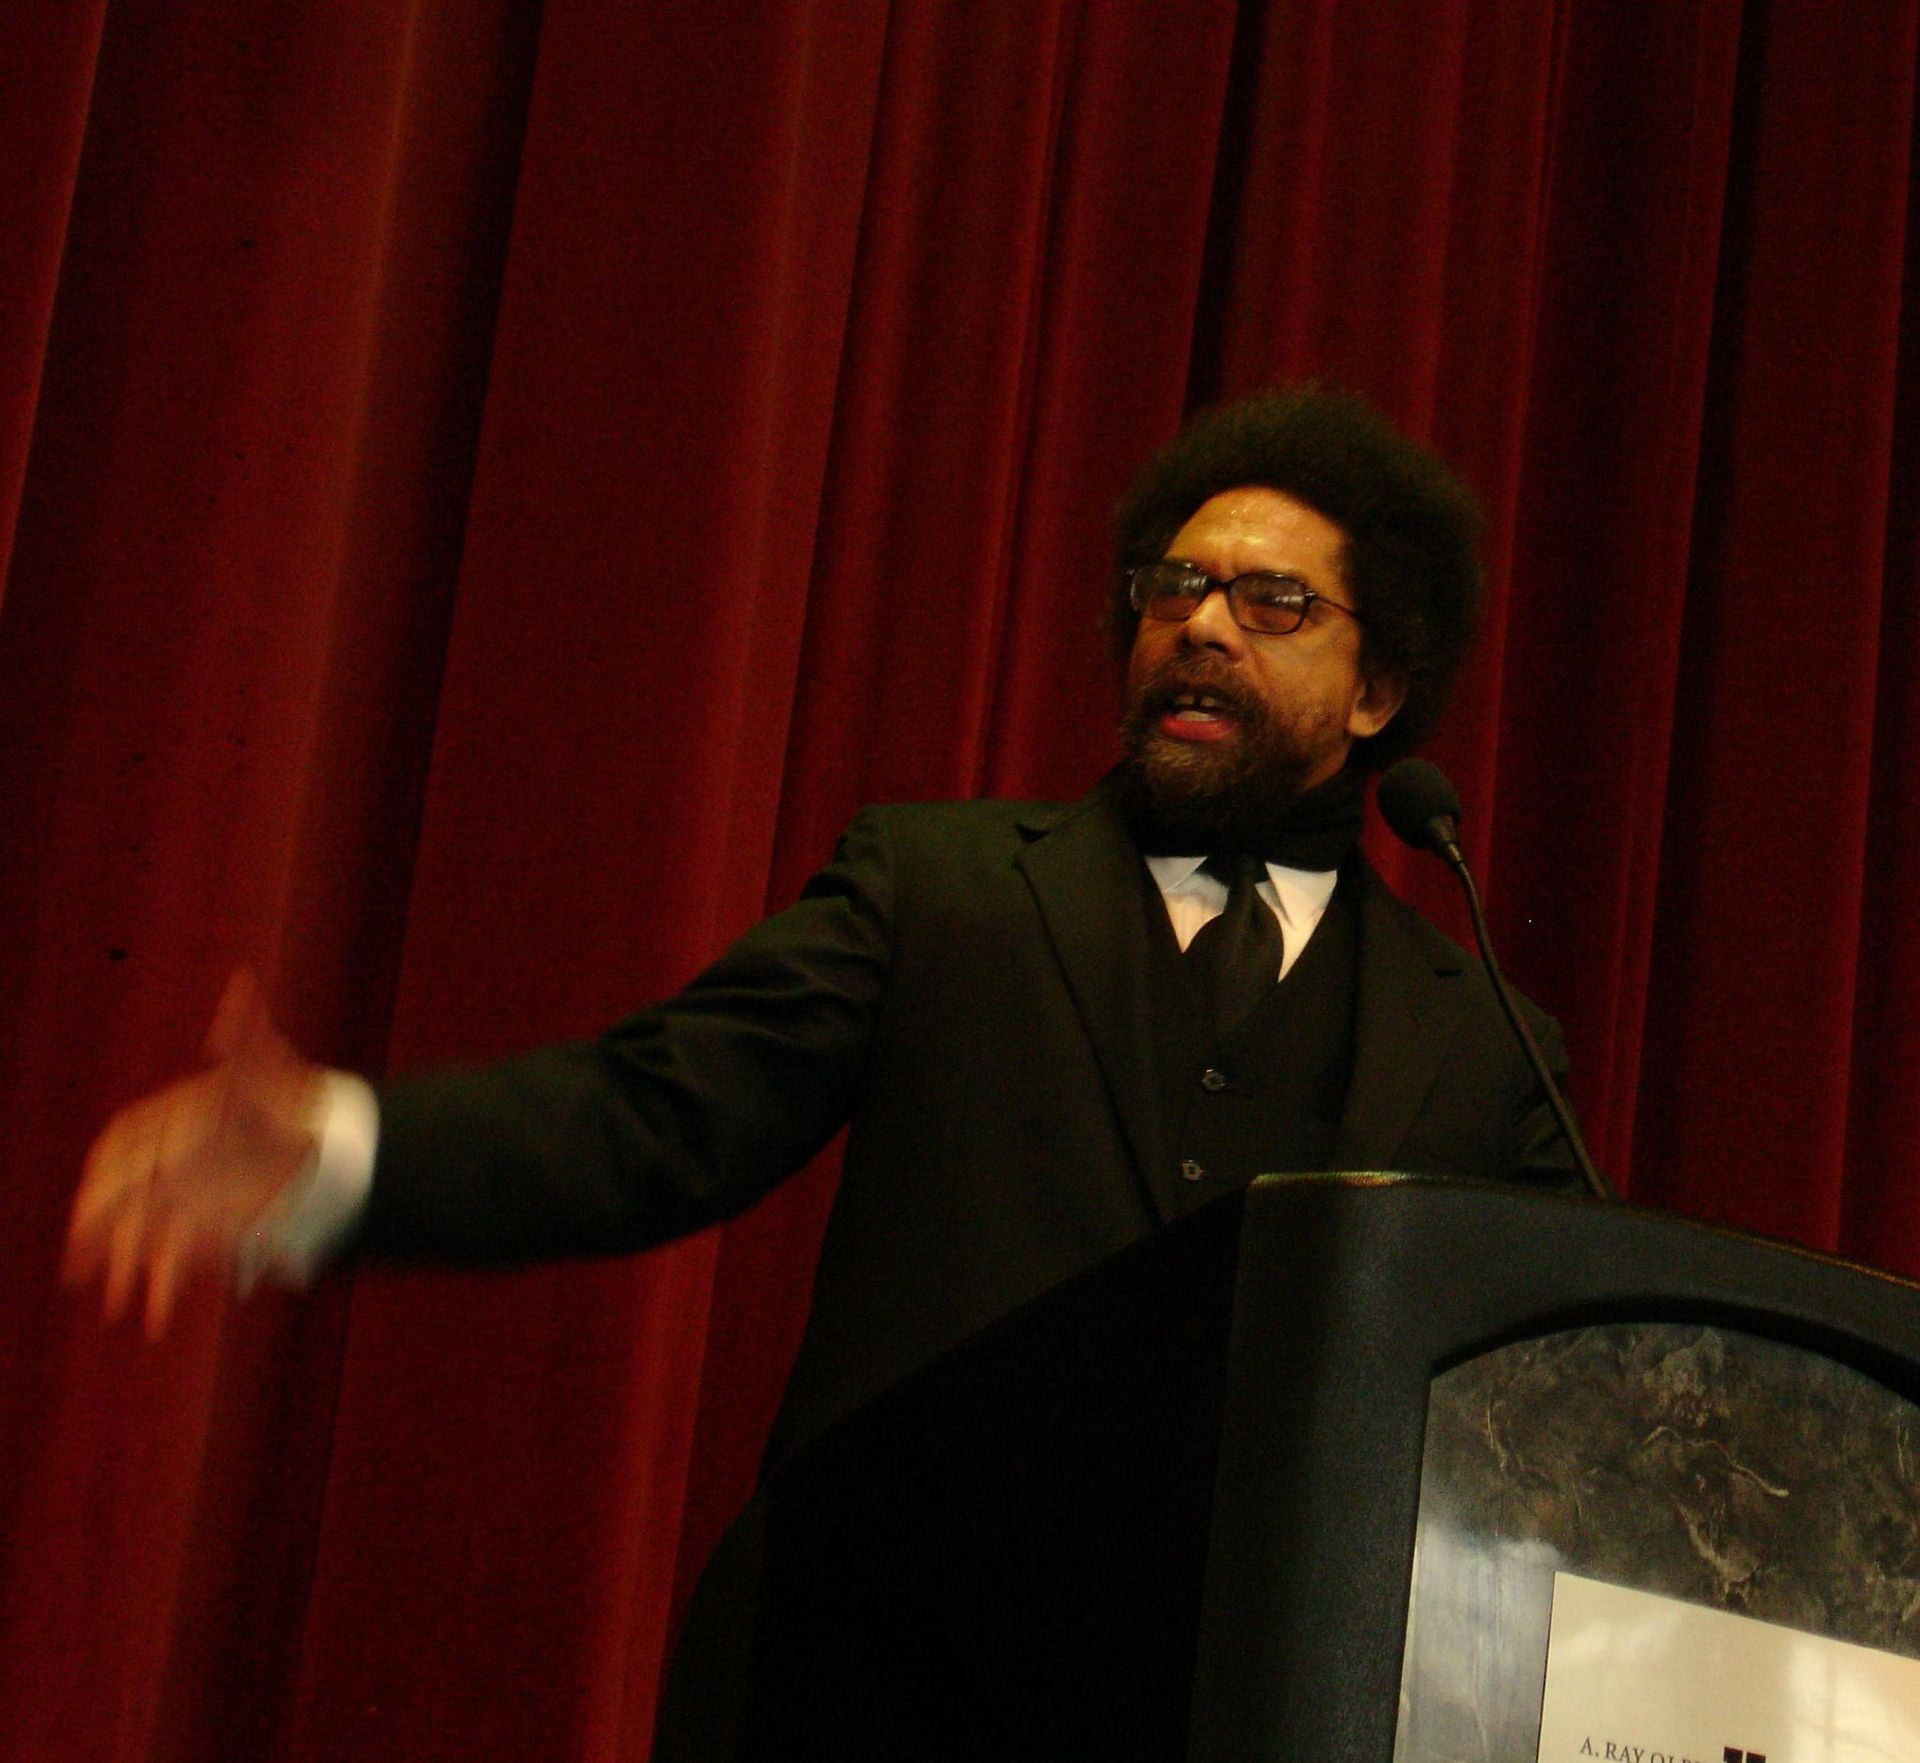 race matters by cornel west In his major bestseller, race matters, philosopher cornel west burst onto the national scene with his searing analysis of the scars of racism in american democracy race matters has become a contemporary classic, still in print after ten years, having sold more than four hundred thousand copies.